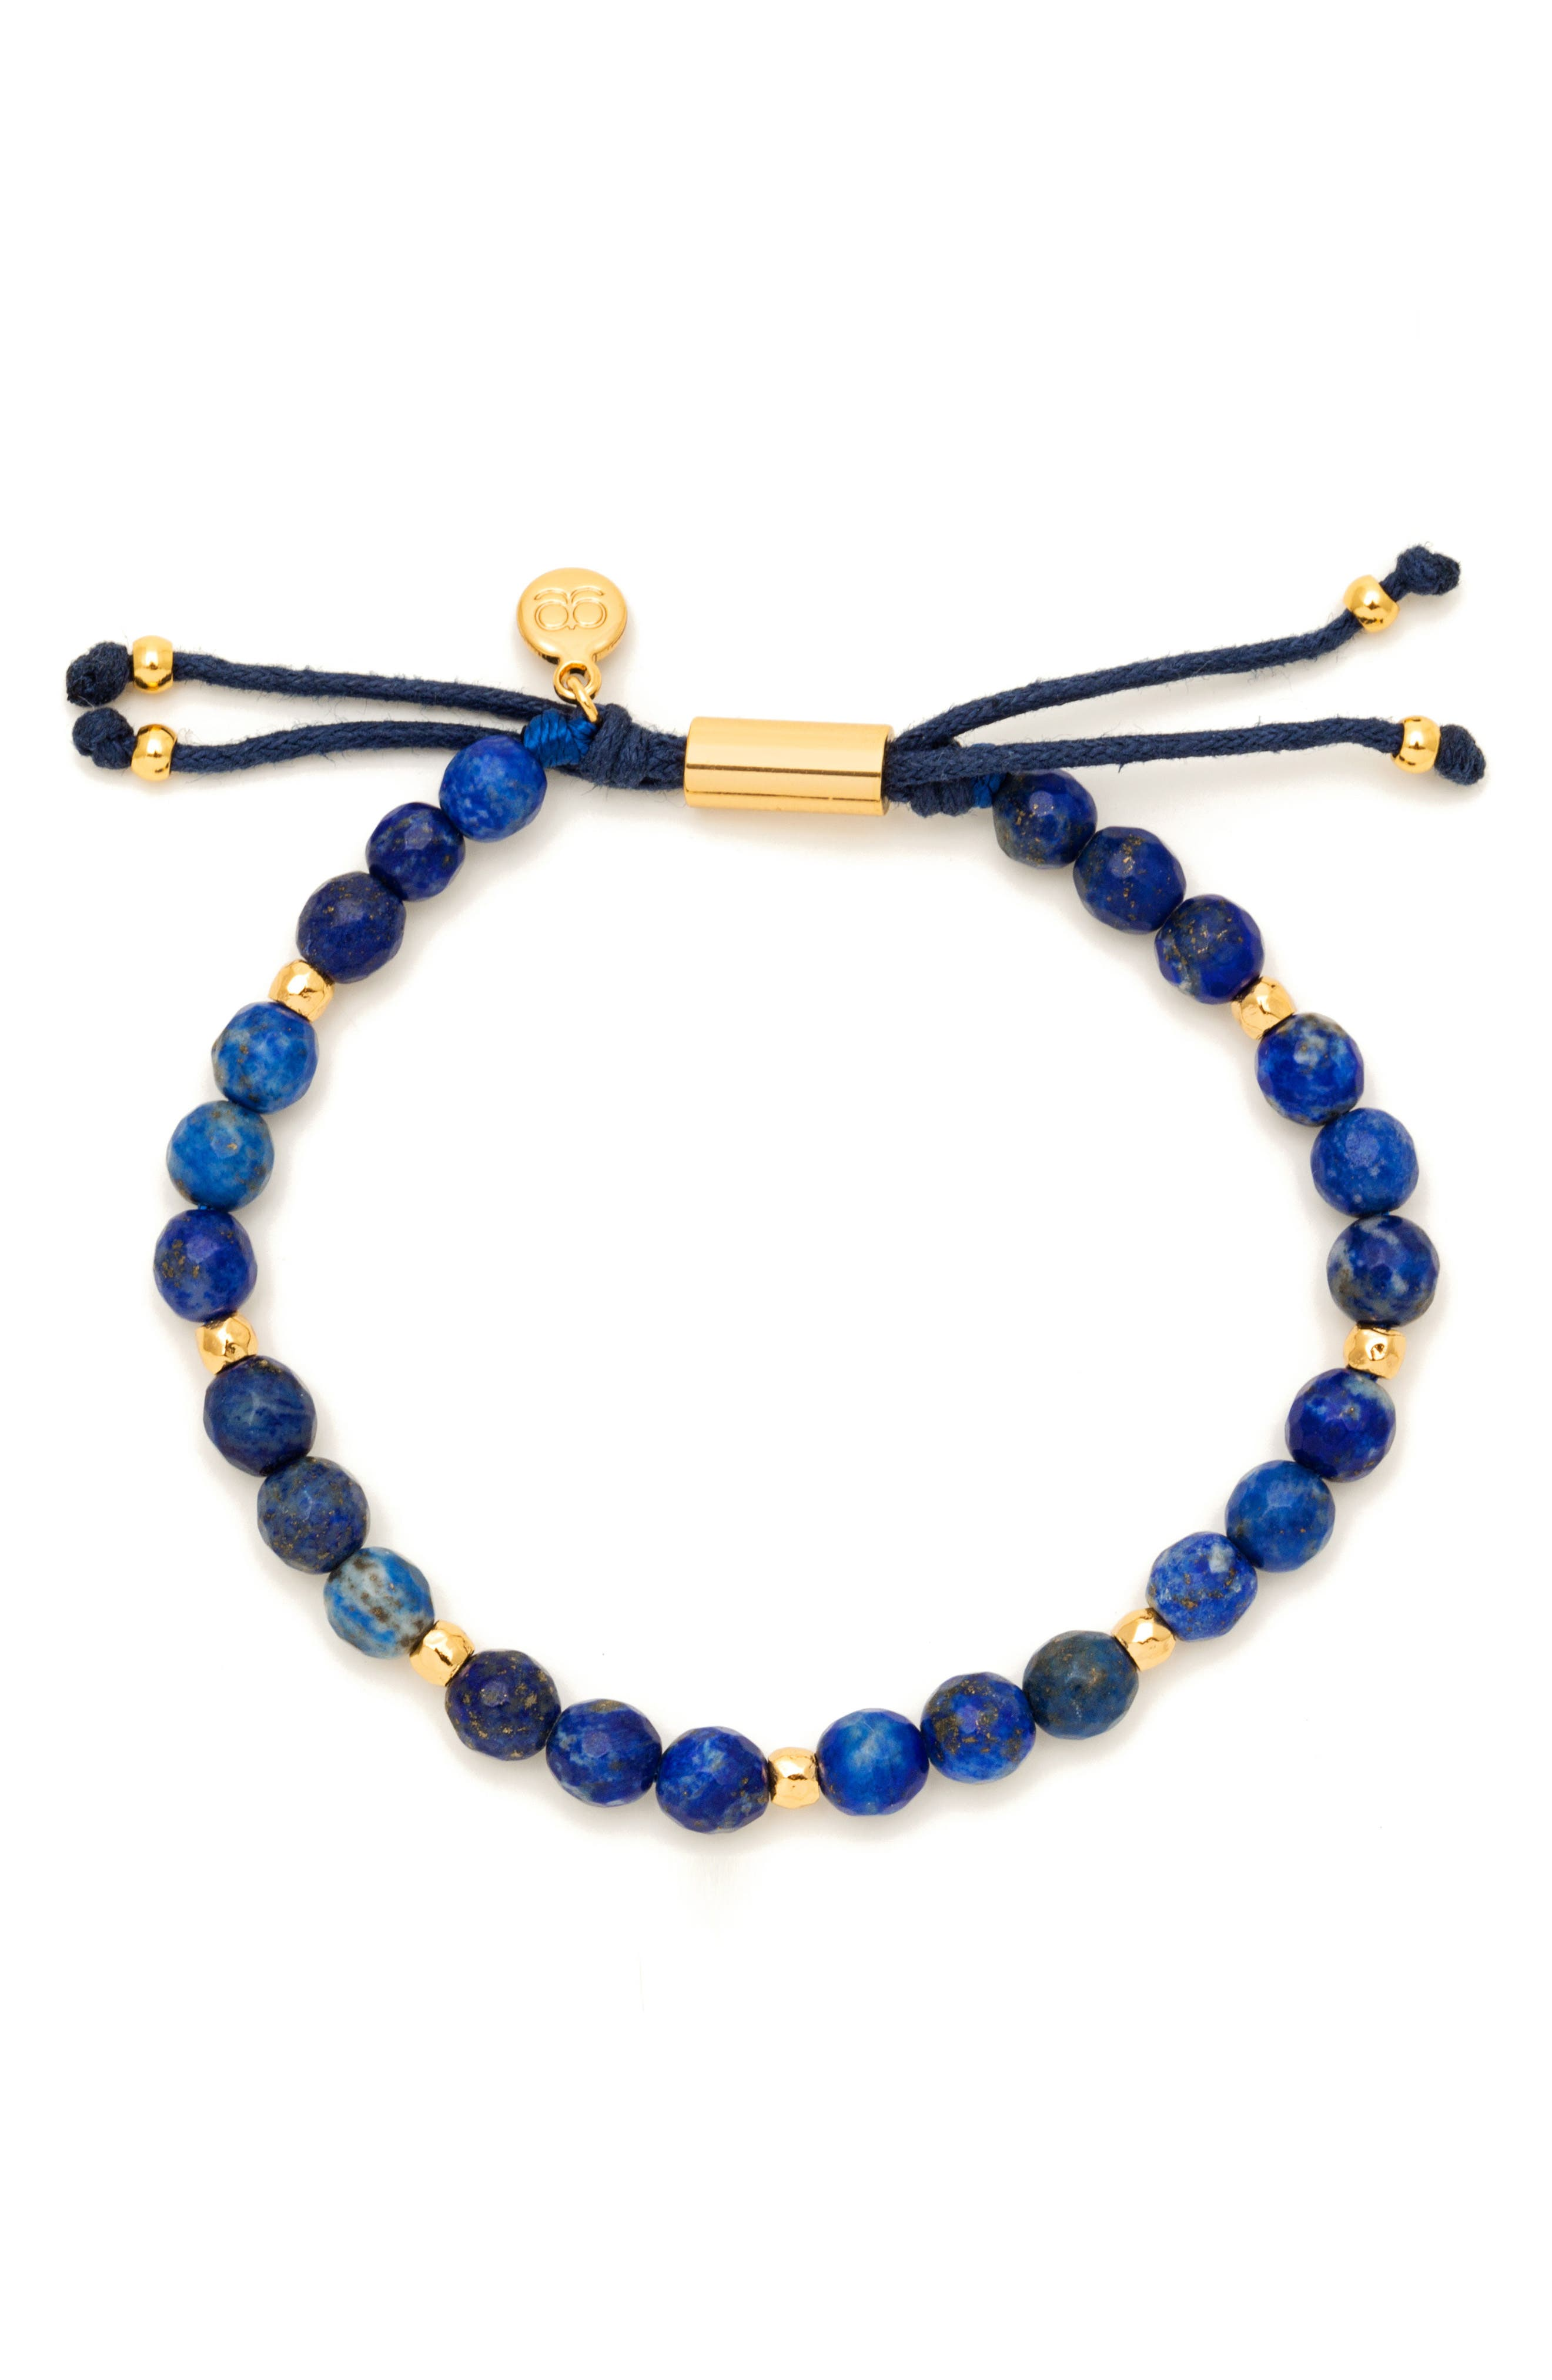 Main Image - gorjana Power Semiprecious Stone Beaded Bracelet